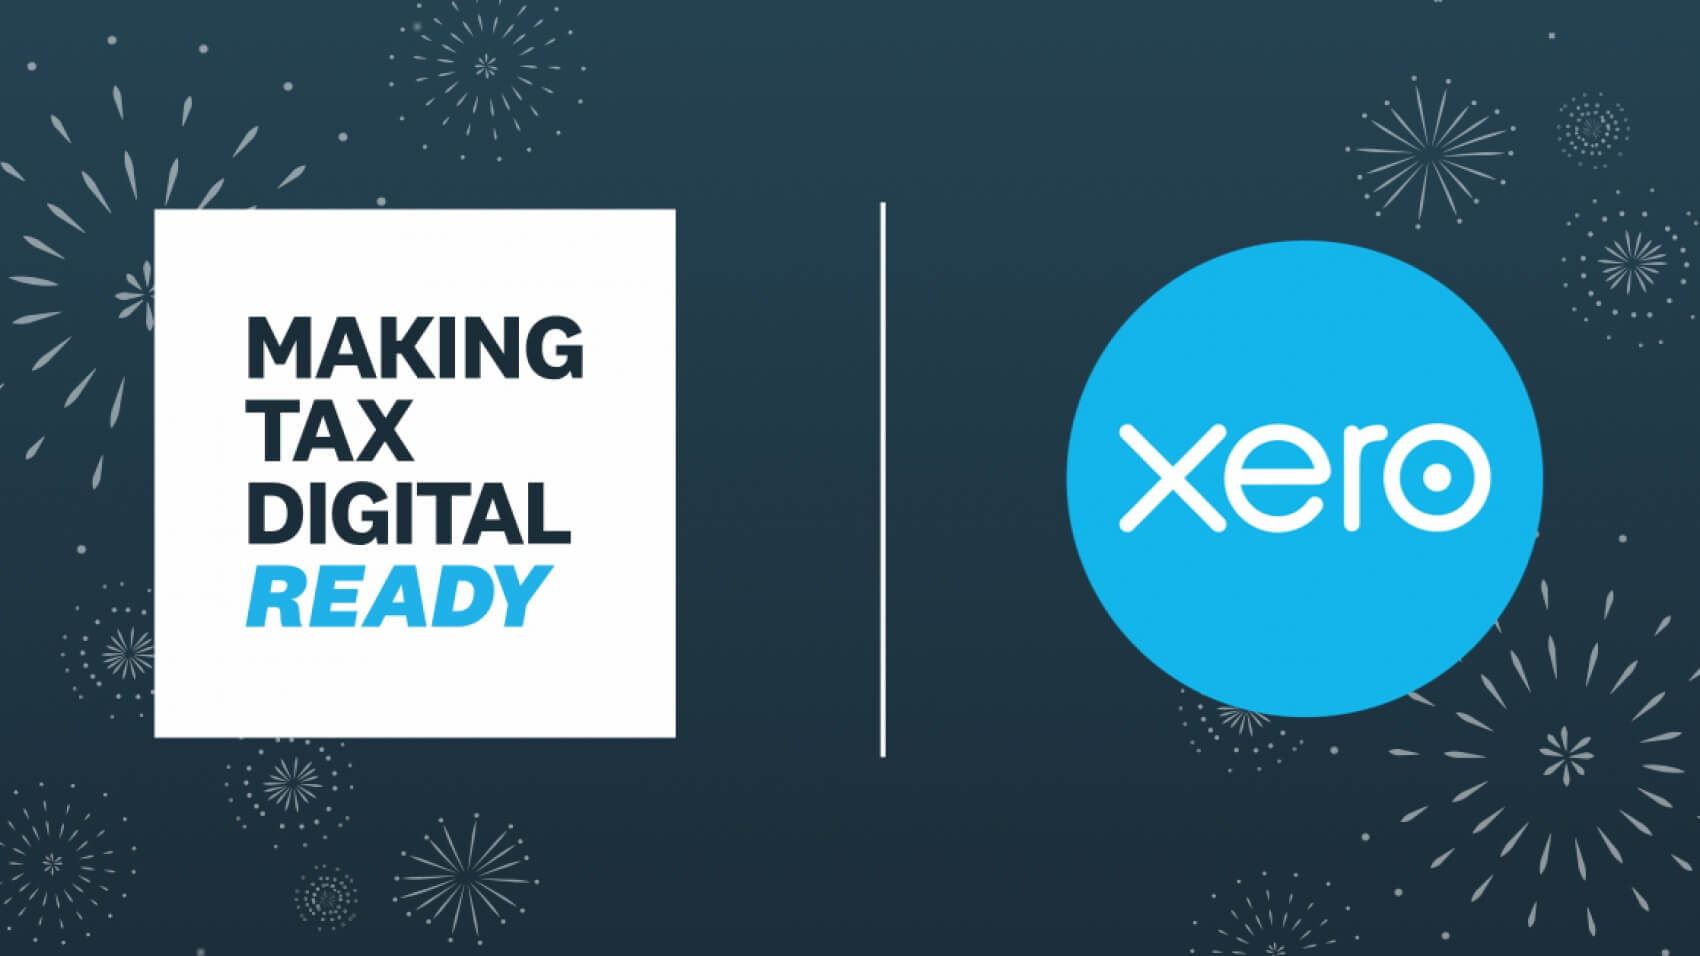 Whyfield Accountants - Making Tax Digital Ready - Xero